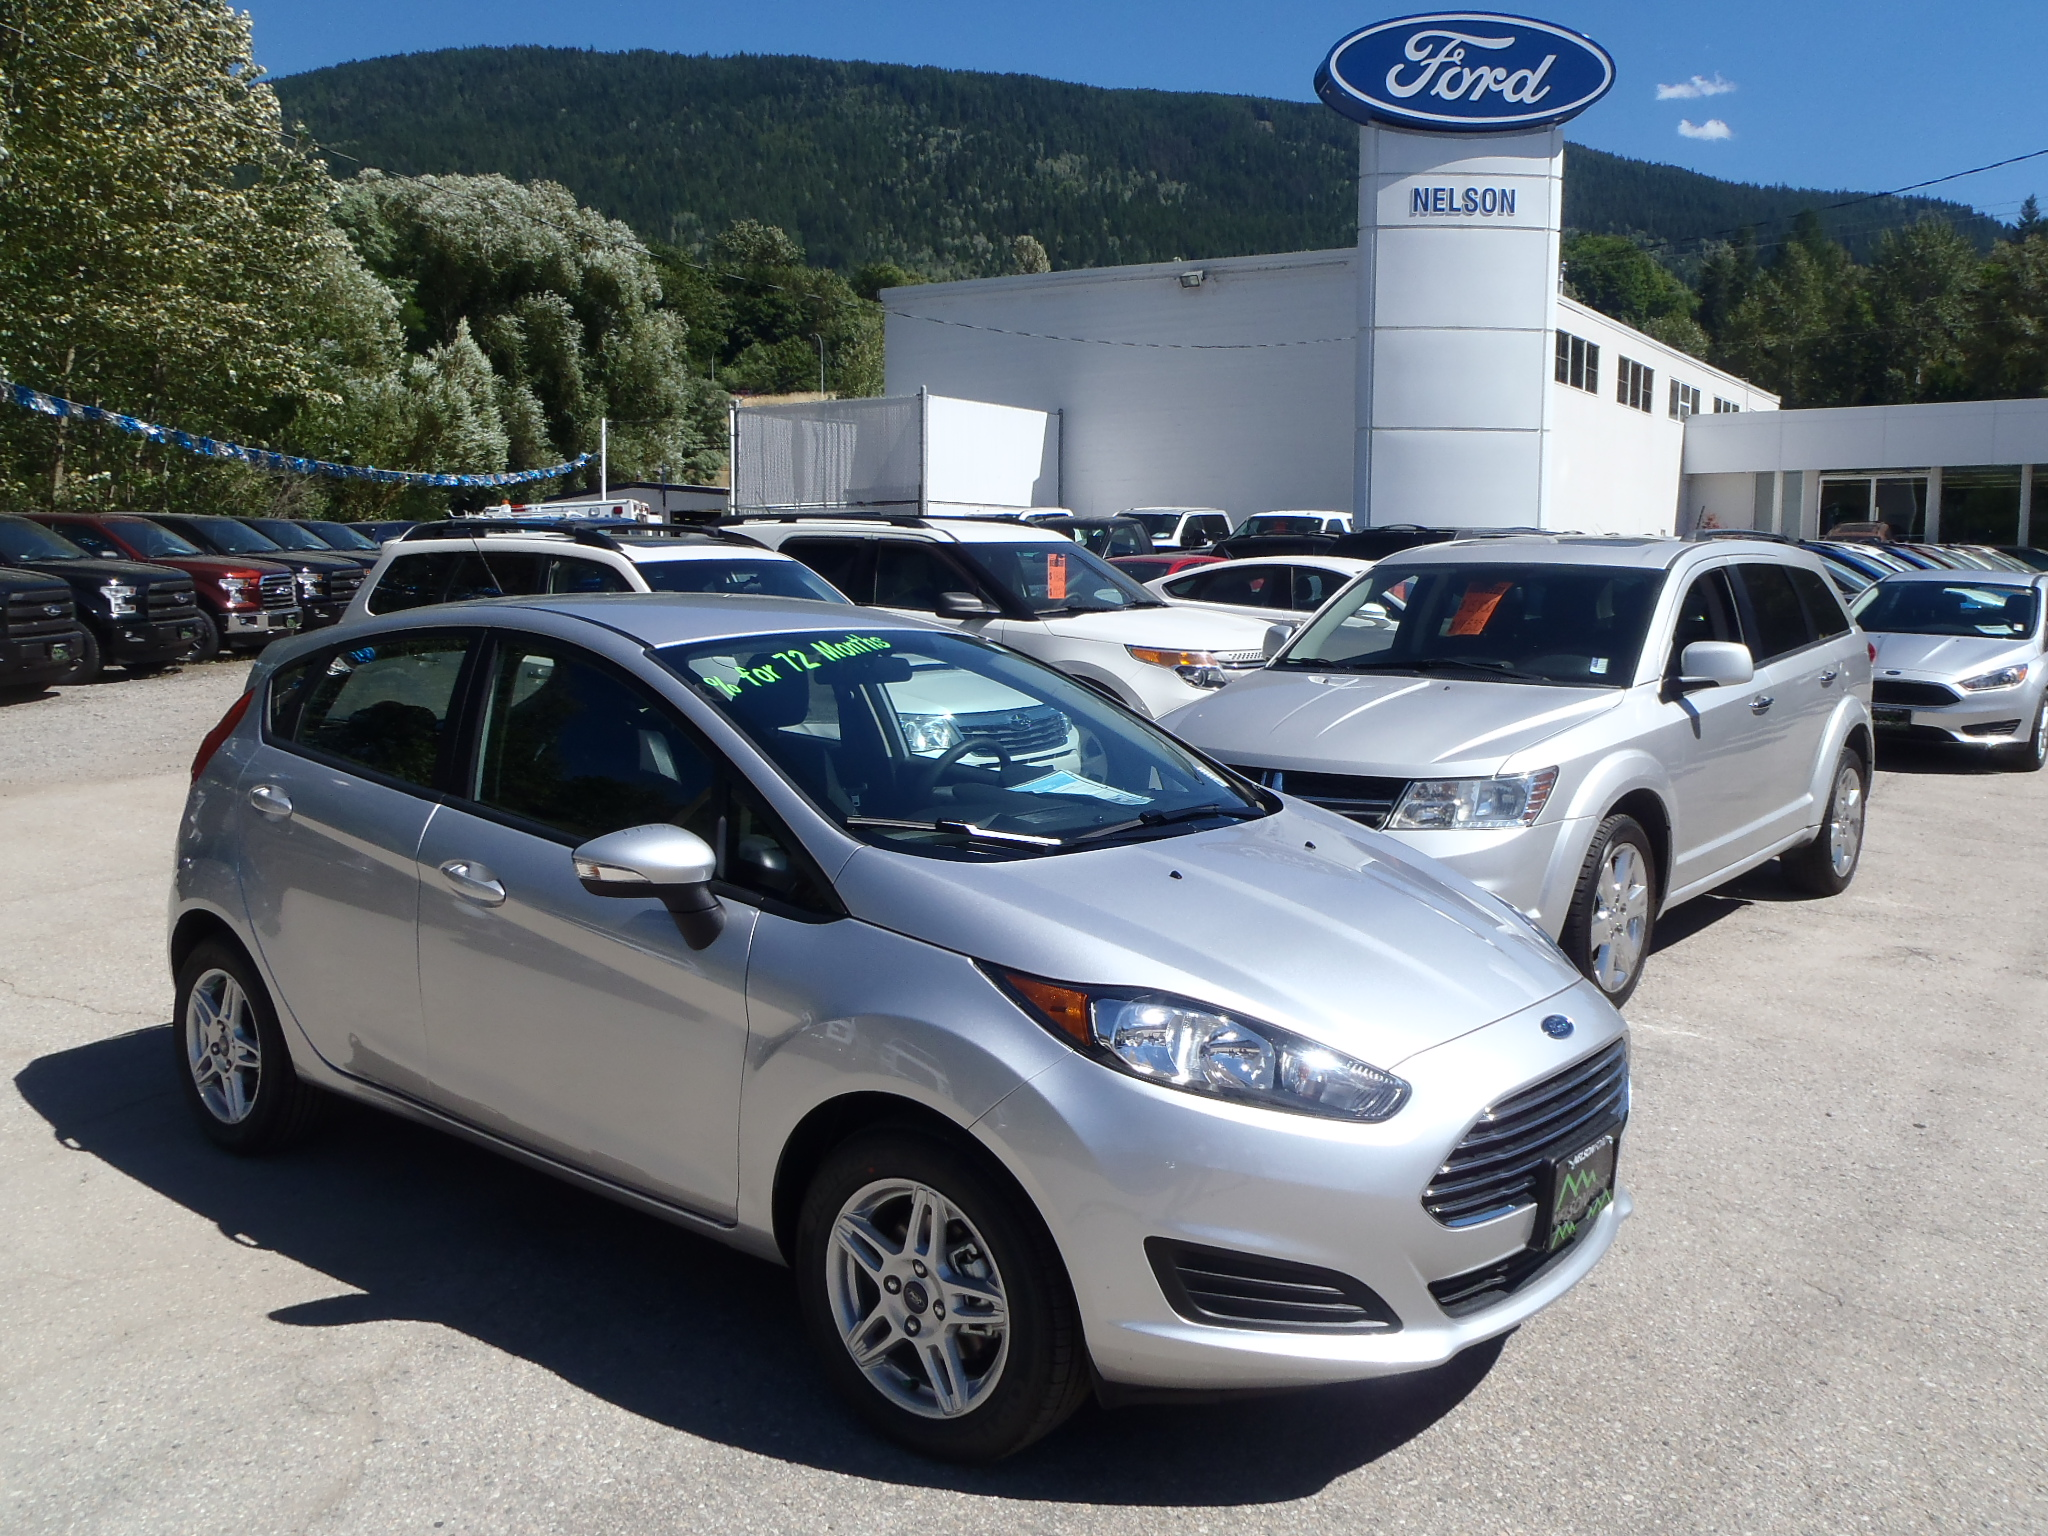 New Ford Vehicle for Sale in Nelson | Nelson Ford